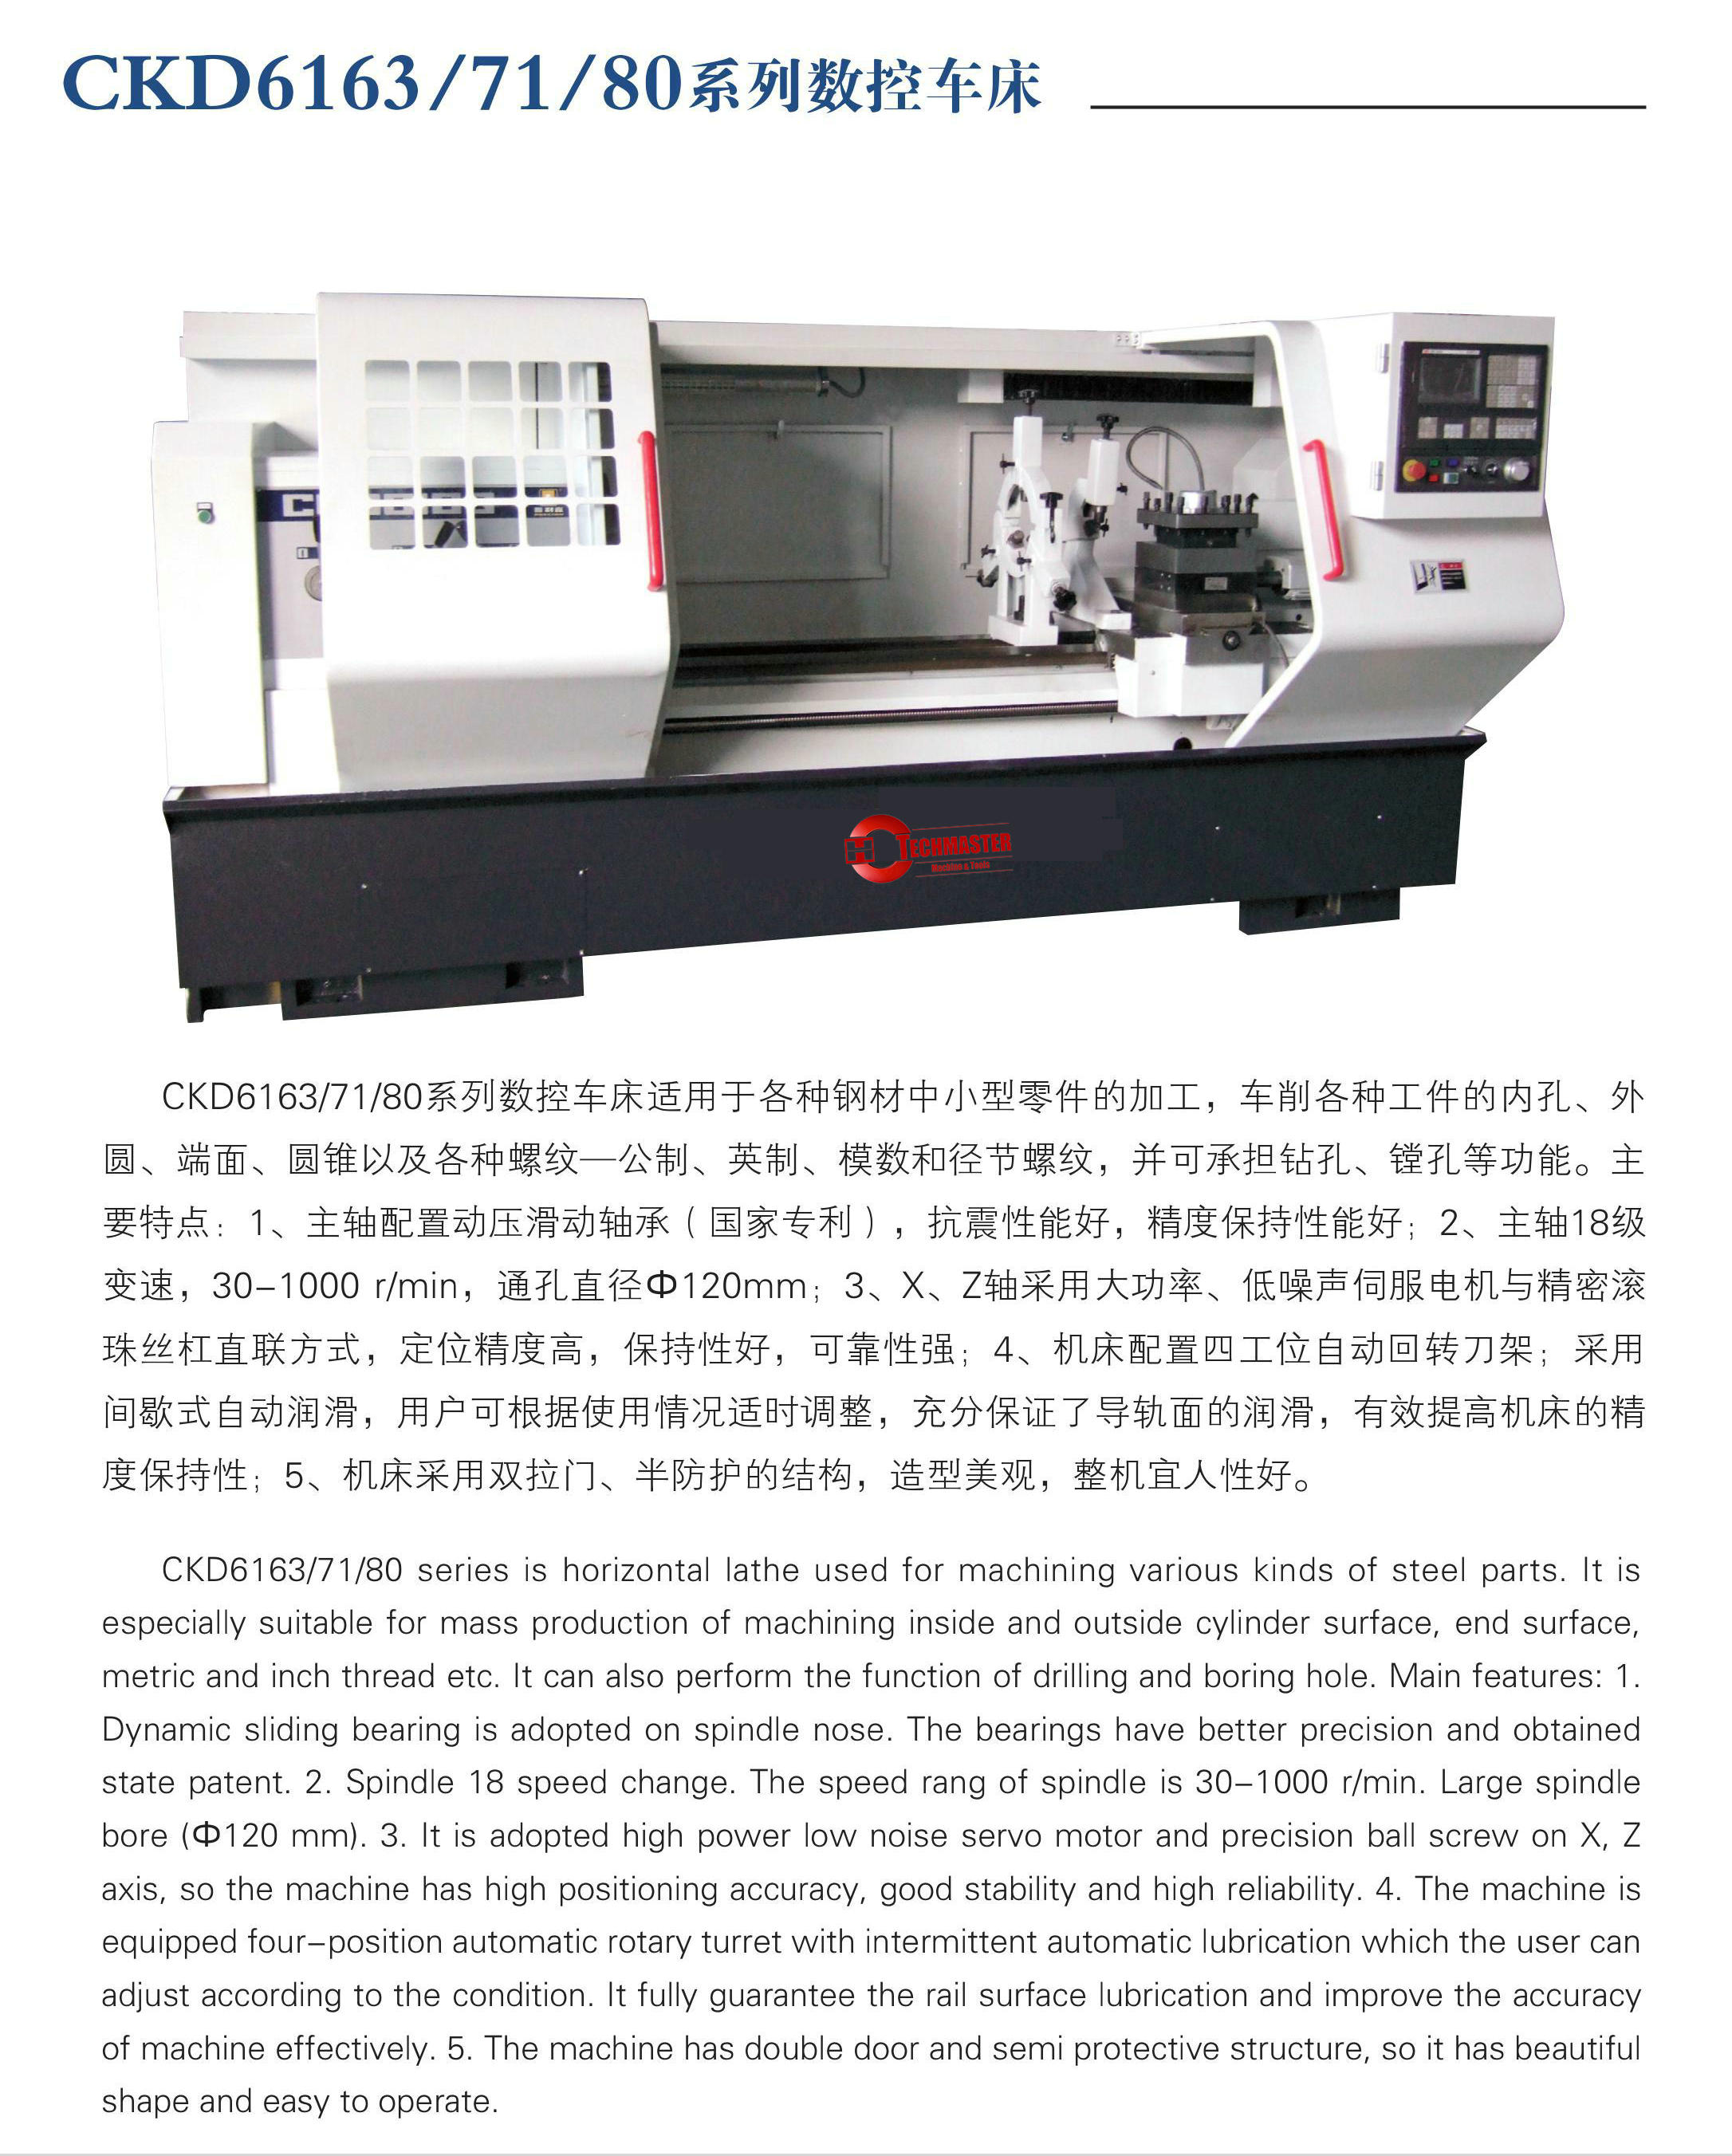 ECONOMICAL CNC LATHE(HARDENED GUIDE WAYS) CKD6163-CKD6171-CKD6180